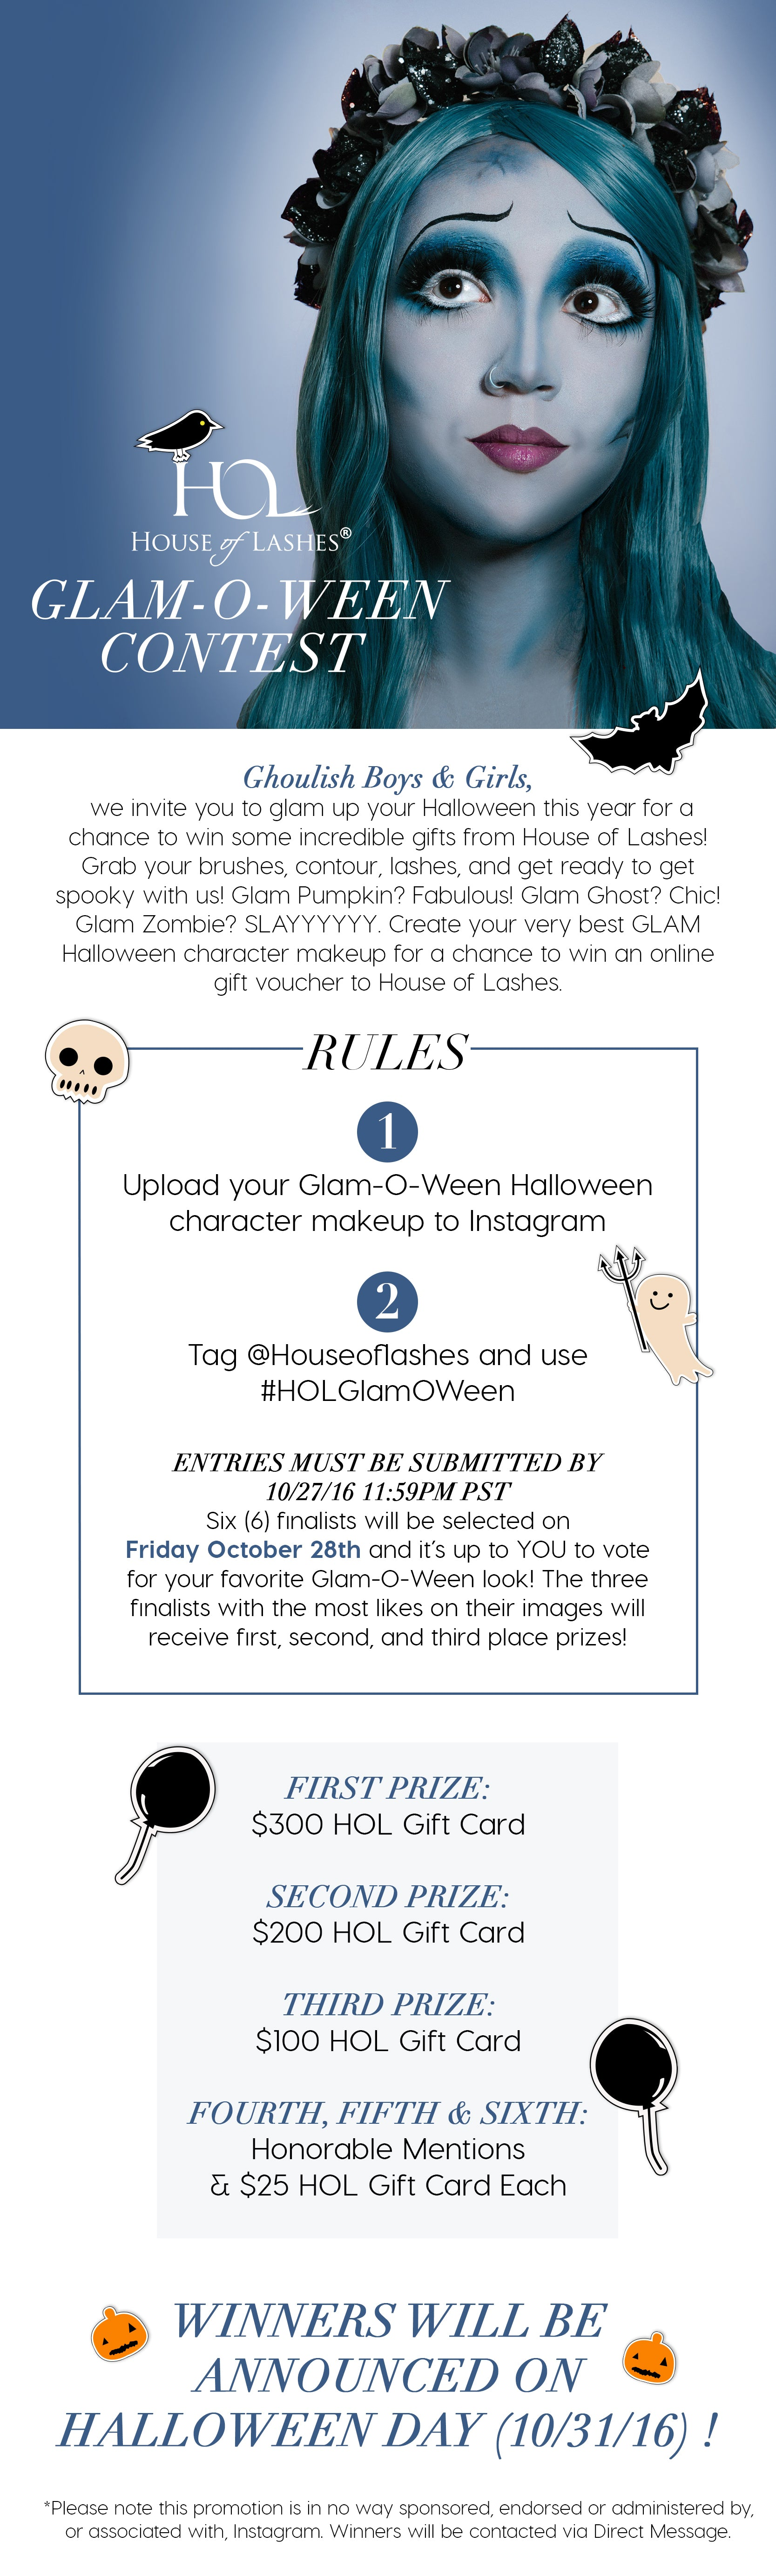 House of Lashes Glam-O-Ween